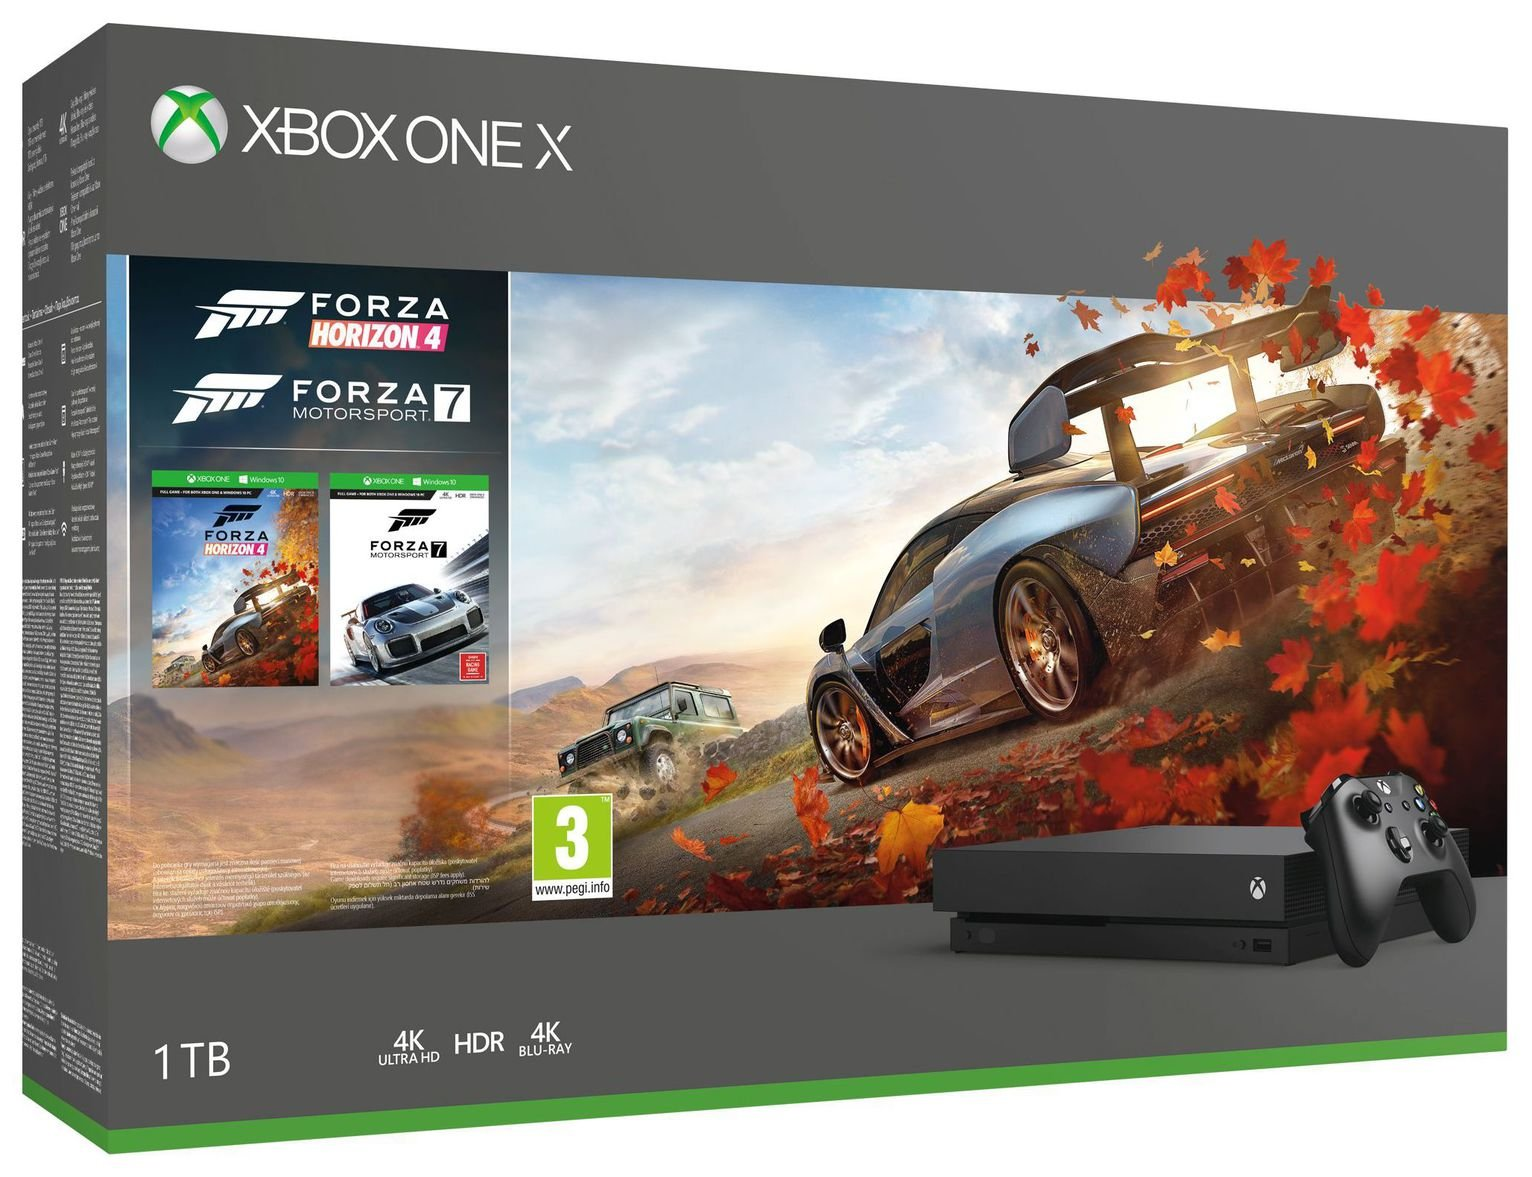 Xbox One X 1TB Console & Forza Bundle